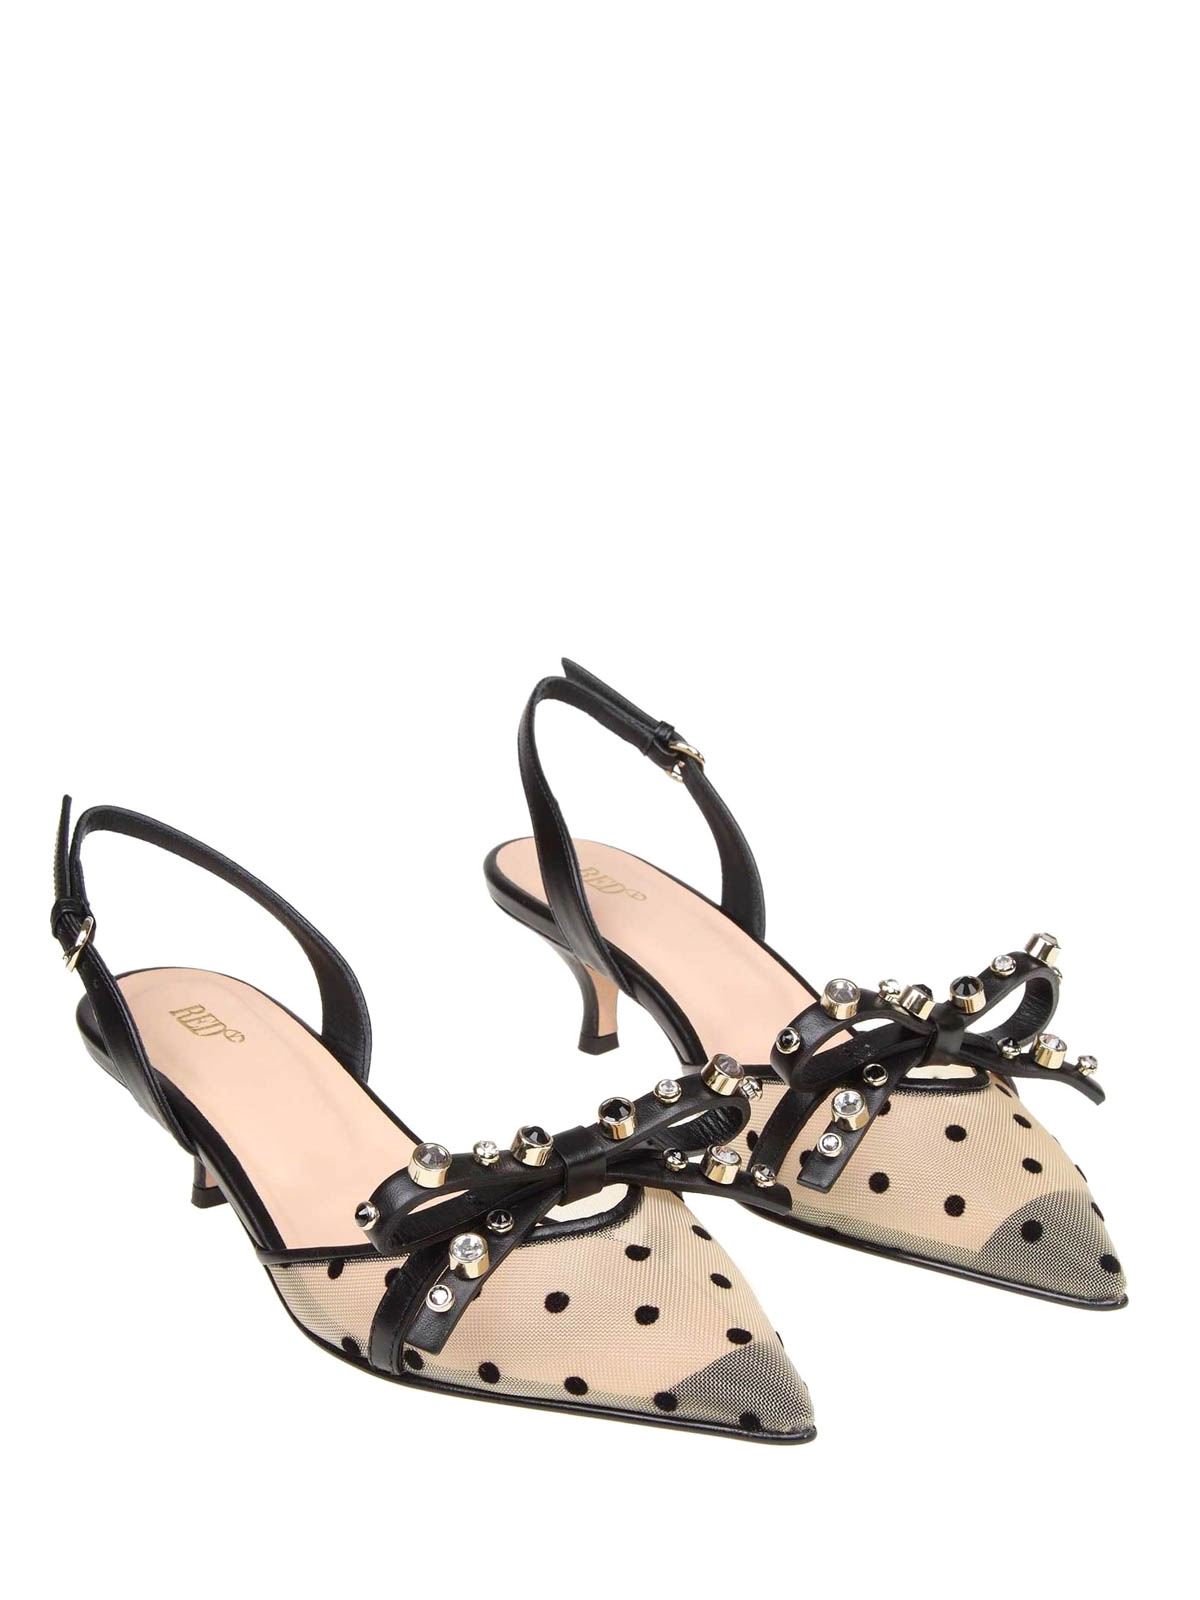 7a94ce8a685 VALENTINO RED  court shoes online - Nude and black polka dot leather  slingbacks